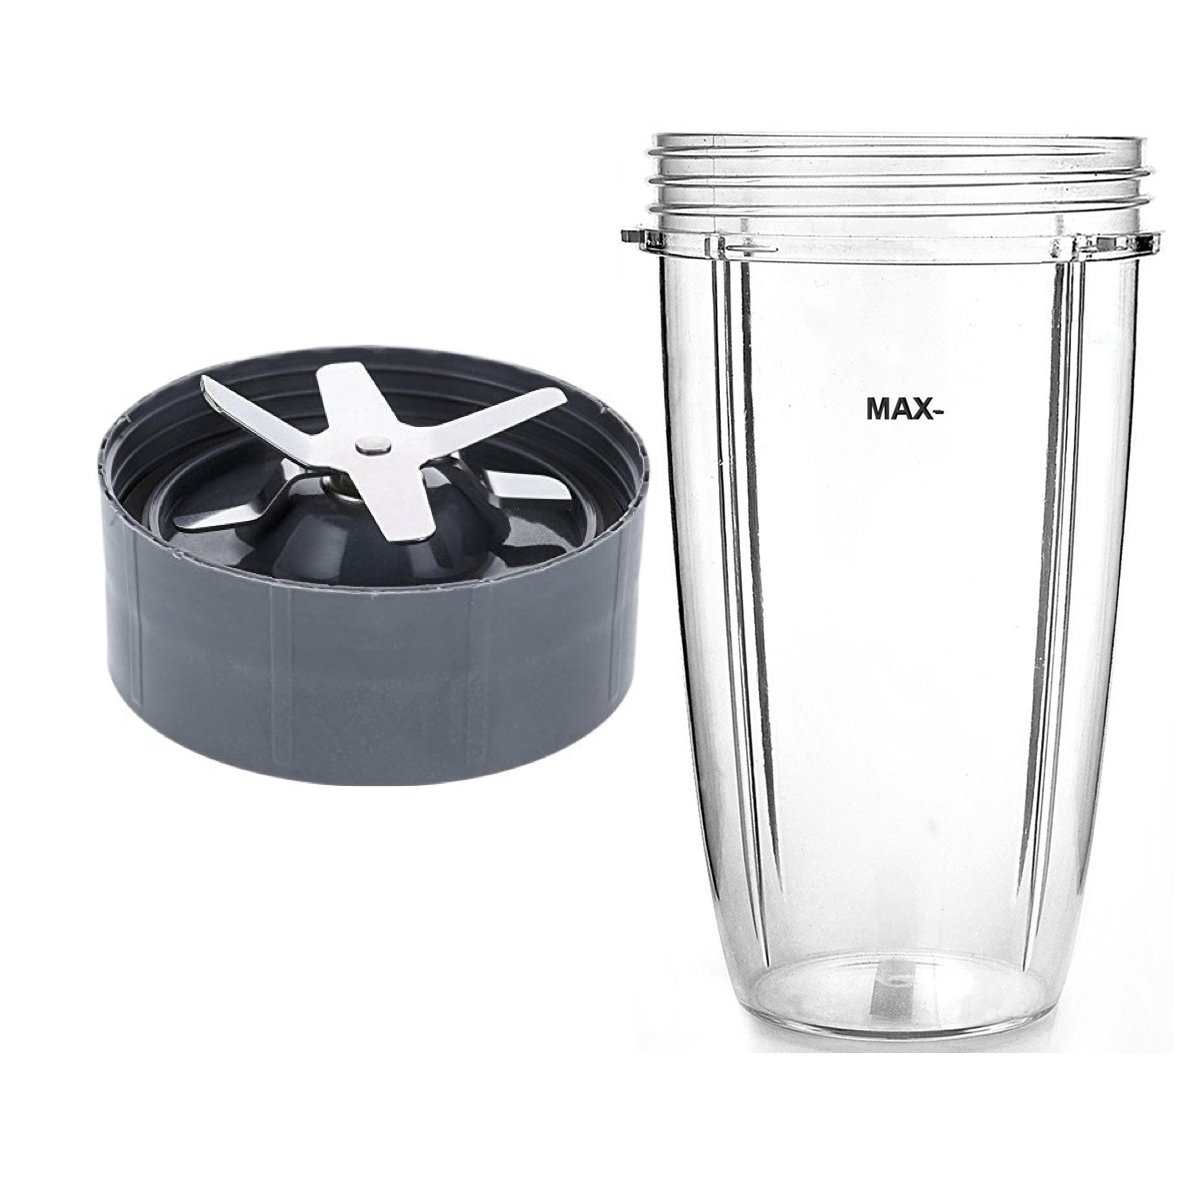 NutriBullet Compatible 32oz Cup & Blade Replacement Set - Tall Blender Cup & 6 Fin Extractor Blade Accessories